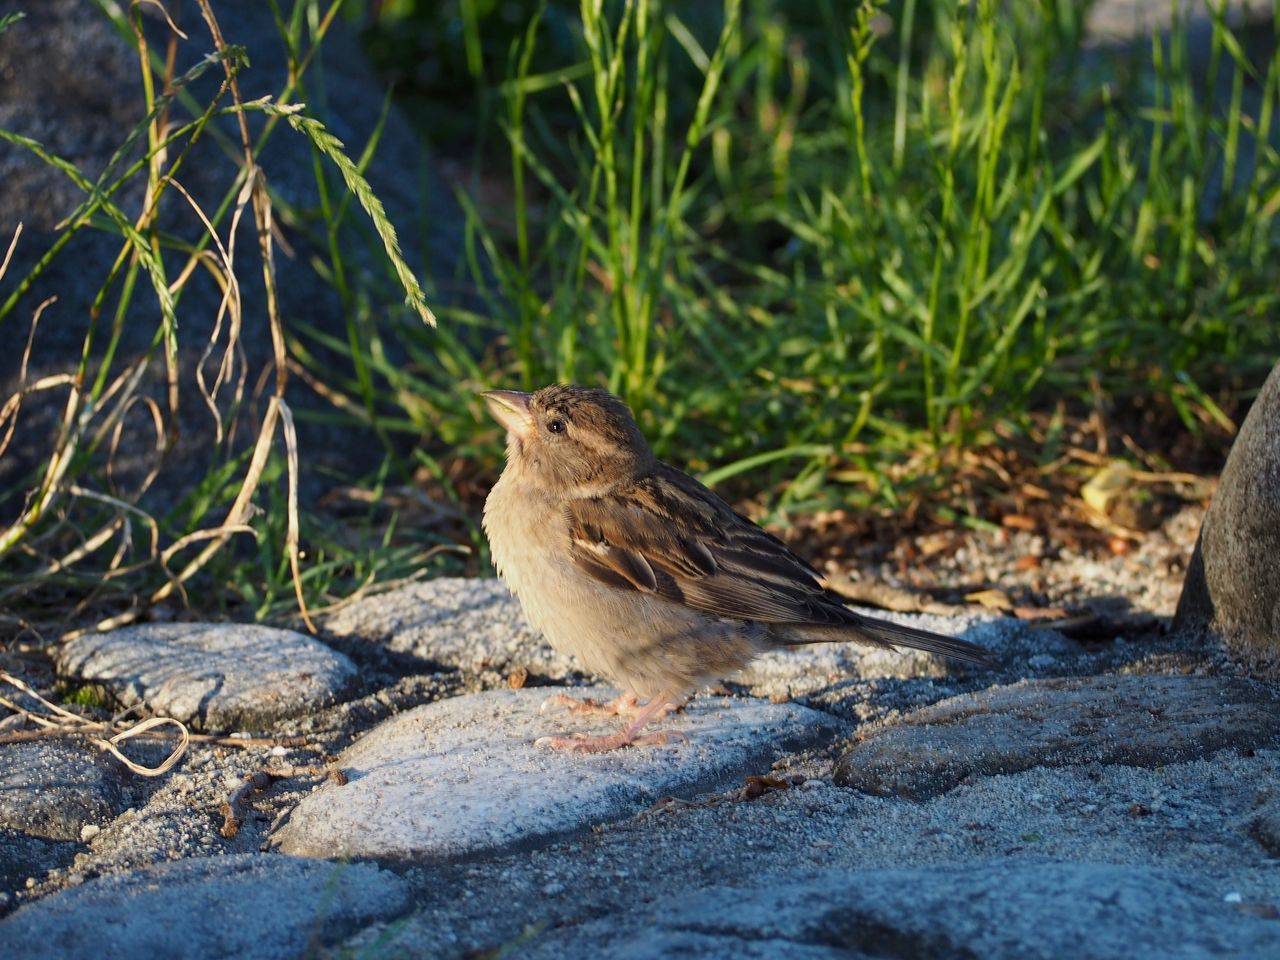 animal themes, animal, one animal, animal wildlife, vertebrate, animals in the wild, bird, perching, day, sparrow, nature, no people, plant, outdoors, rock, land, focus on foreground, side view, close-up, selective focus